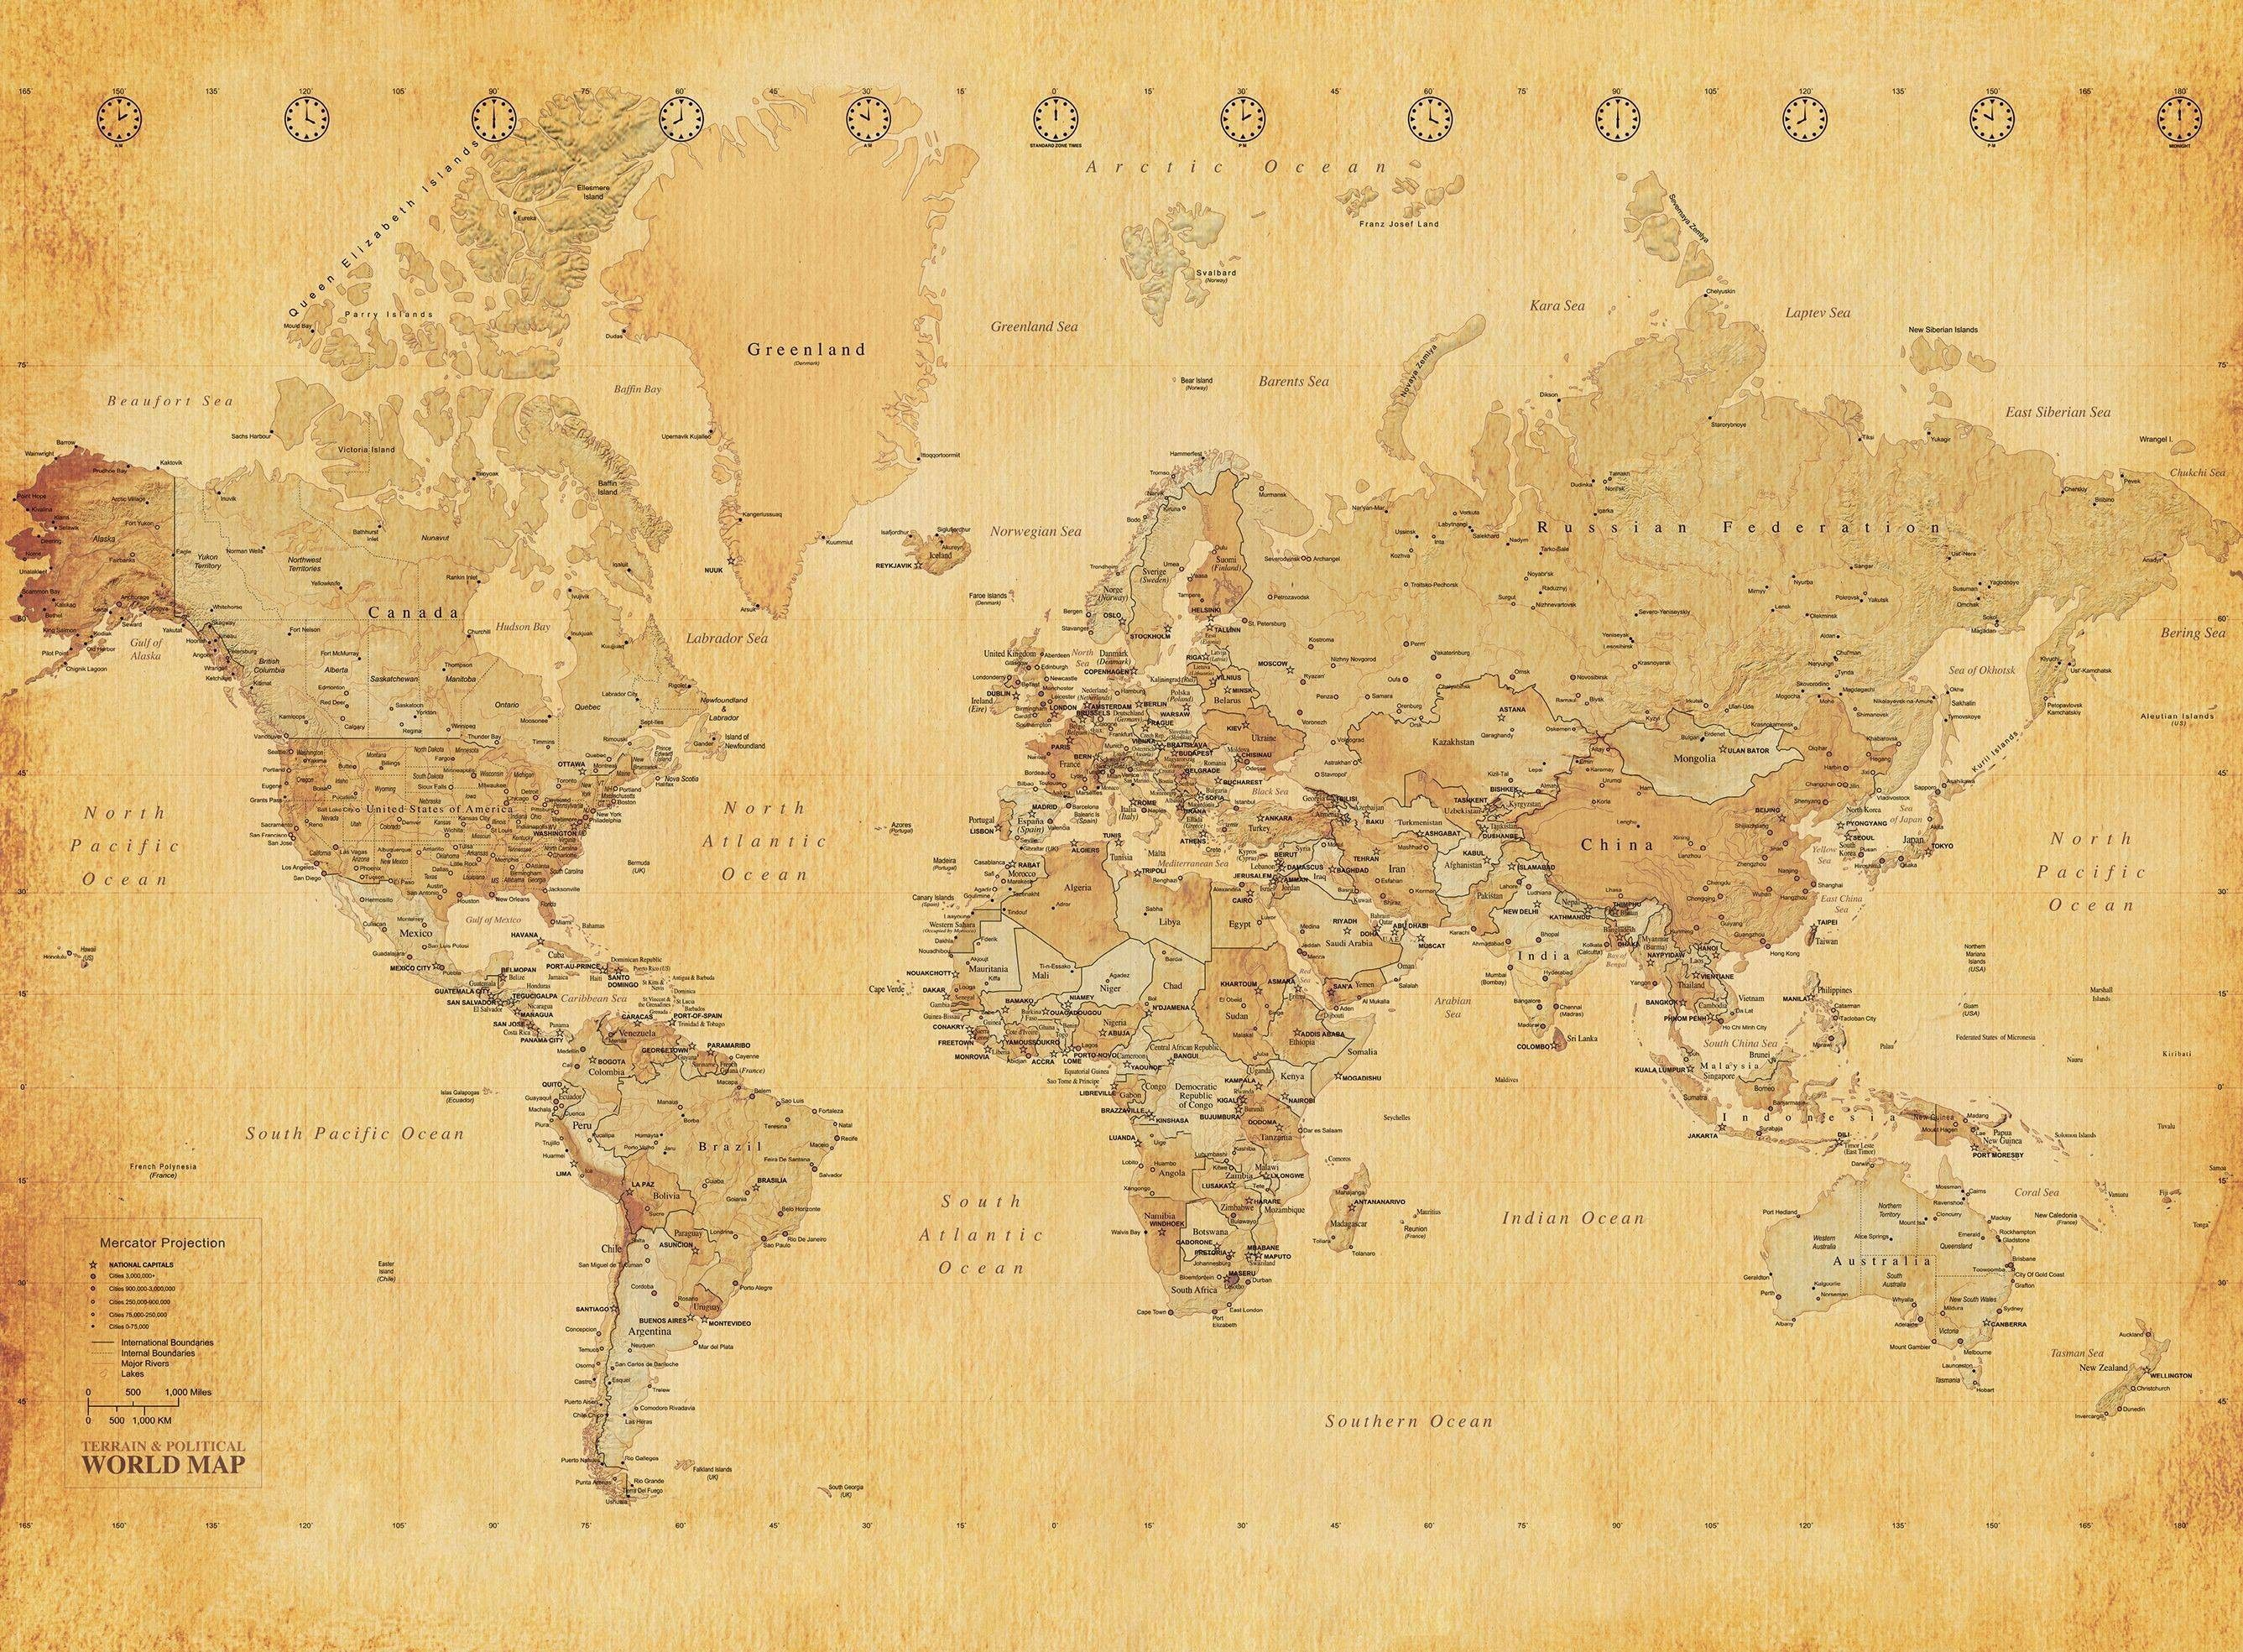 Antique World Map Wallpapers - Top Free Antique World Map ...